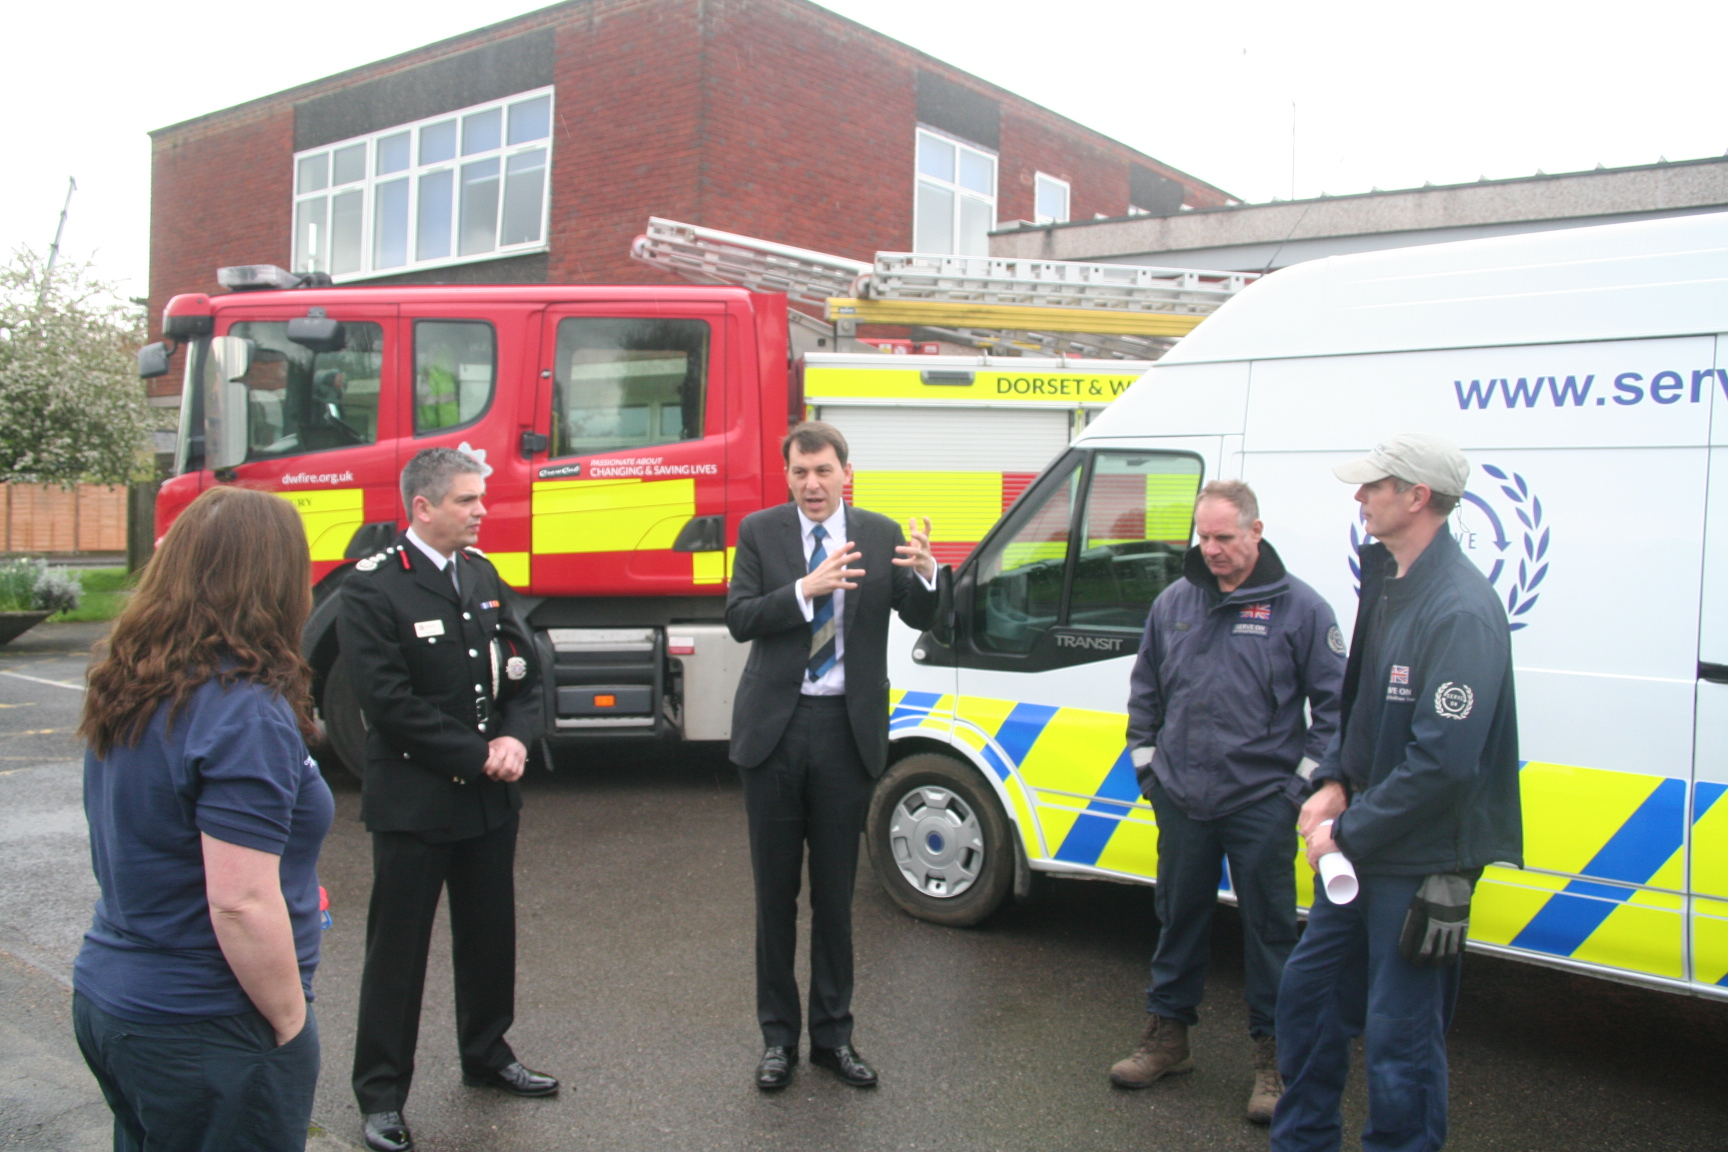 Salisbury MP John Glen congratulates Serve On volunteers on the arrival of a new kit van, thanks to the Big Lottery Fun, as Chief Fire Officer Ben Ansell look on.